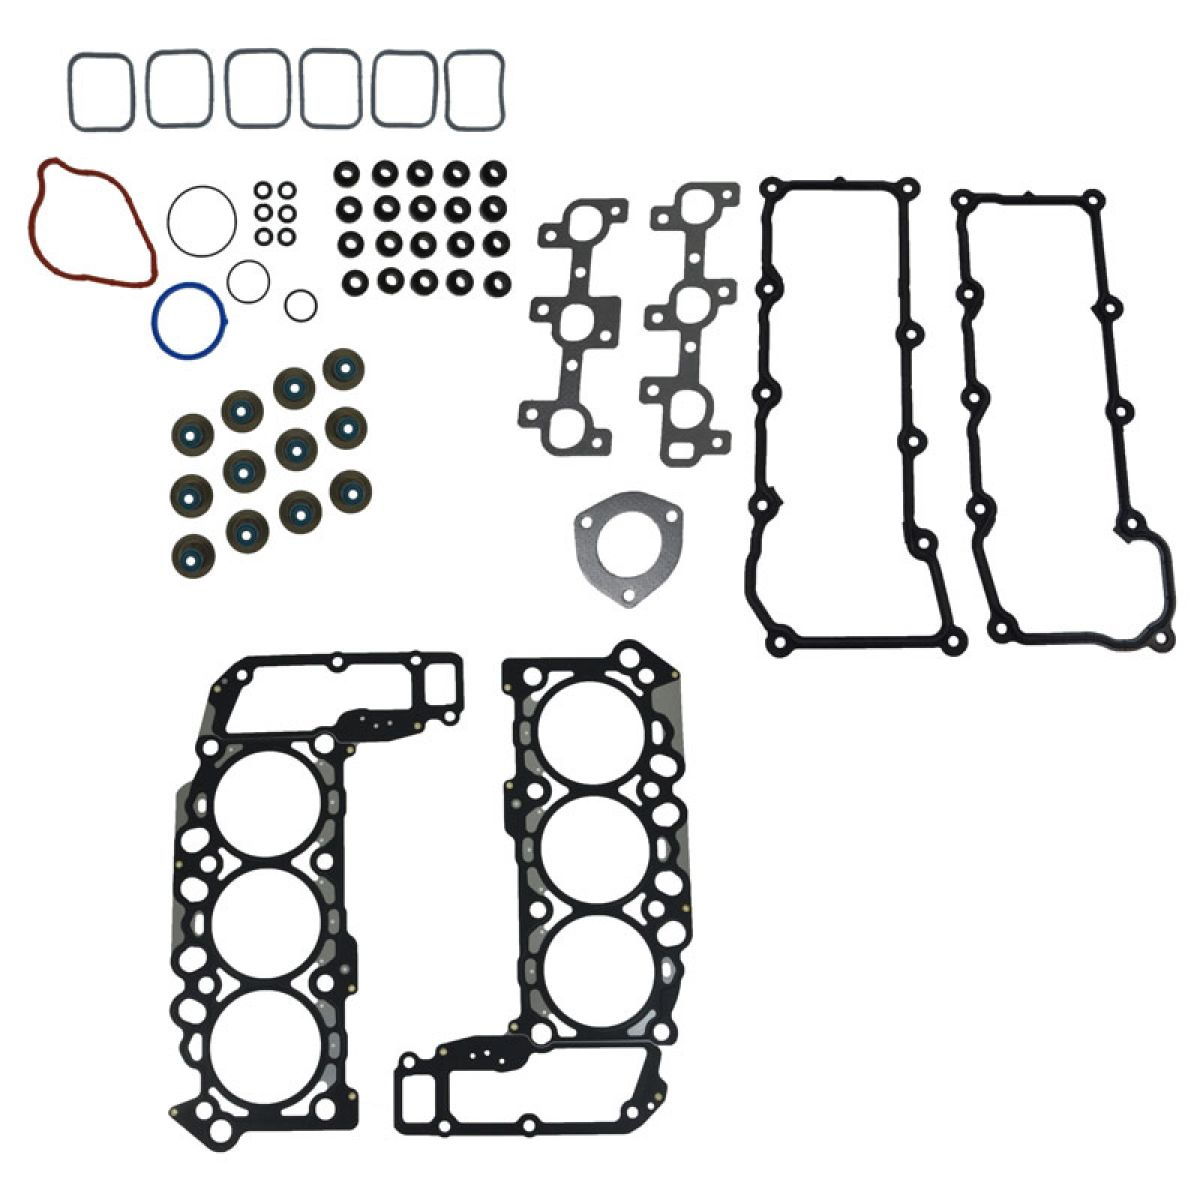 Engine Head Intake Exhaust Manifold Gasket Kit Set For Dodge Truck Jeep 3 7l V6